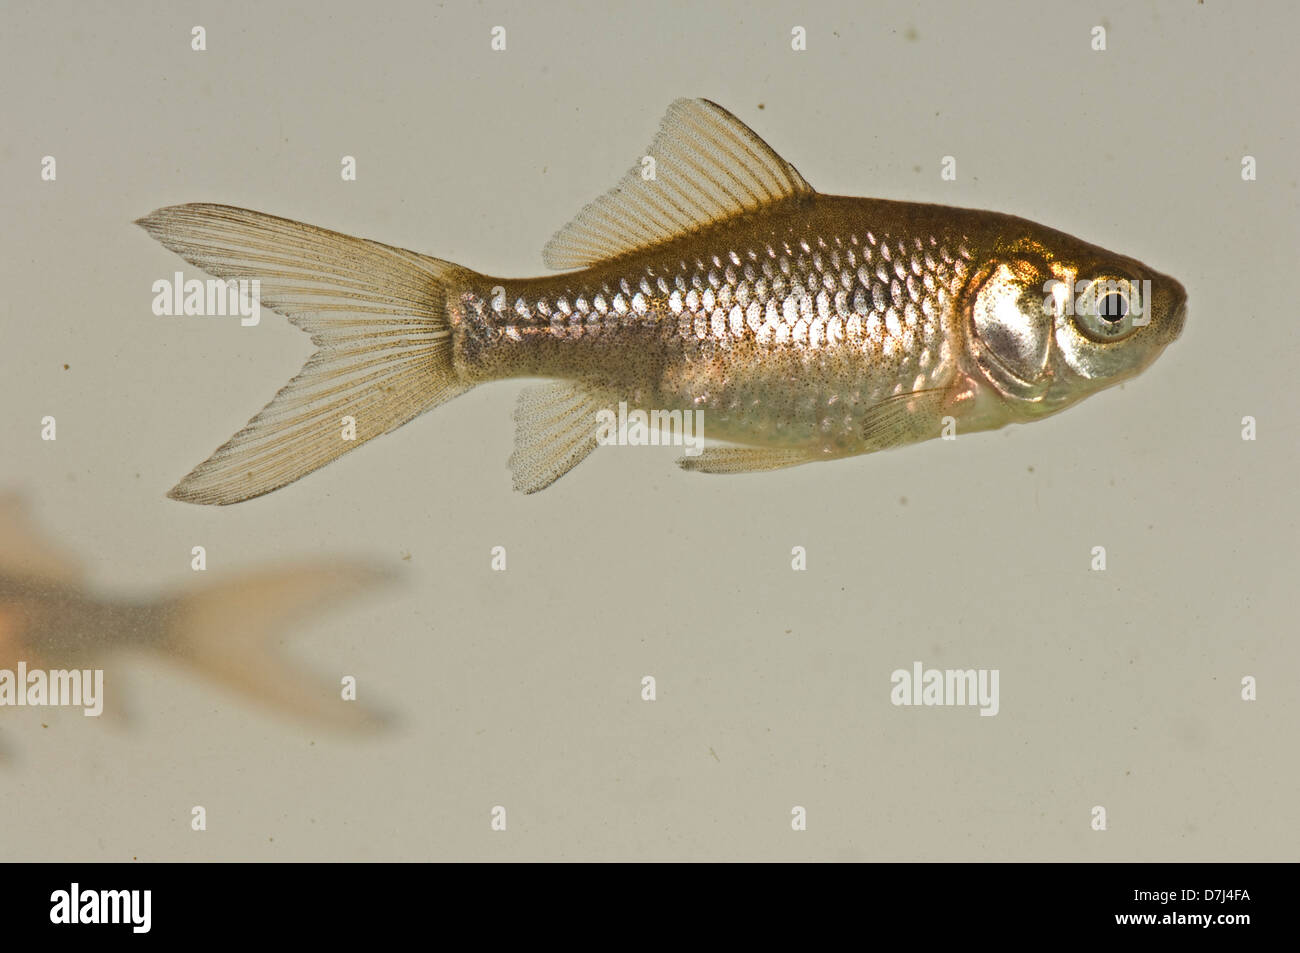 A young goldfish, Carassius auratus auratus, brown & silver colour but lacking the gold or orange of adult fish Stock Photo